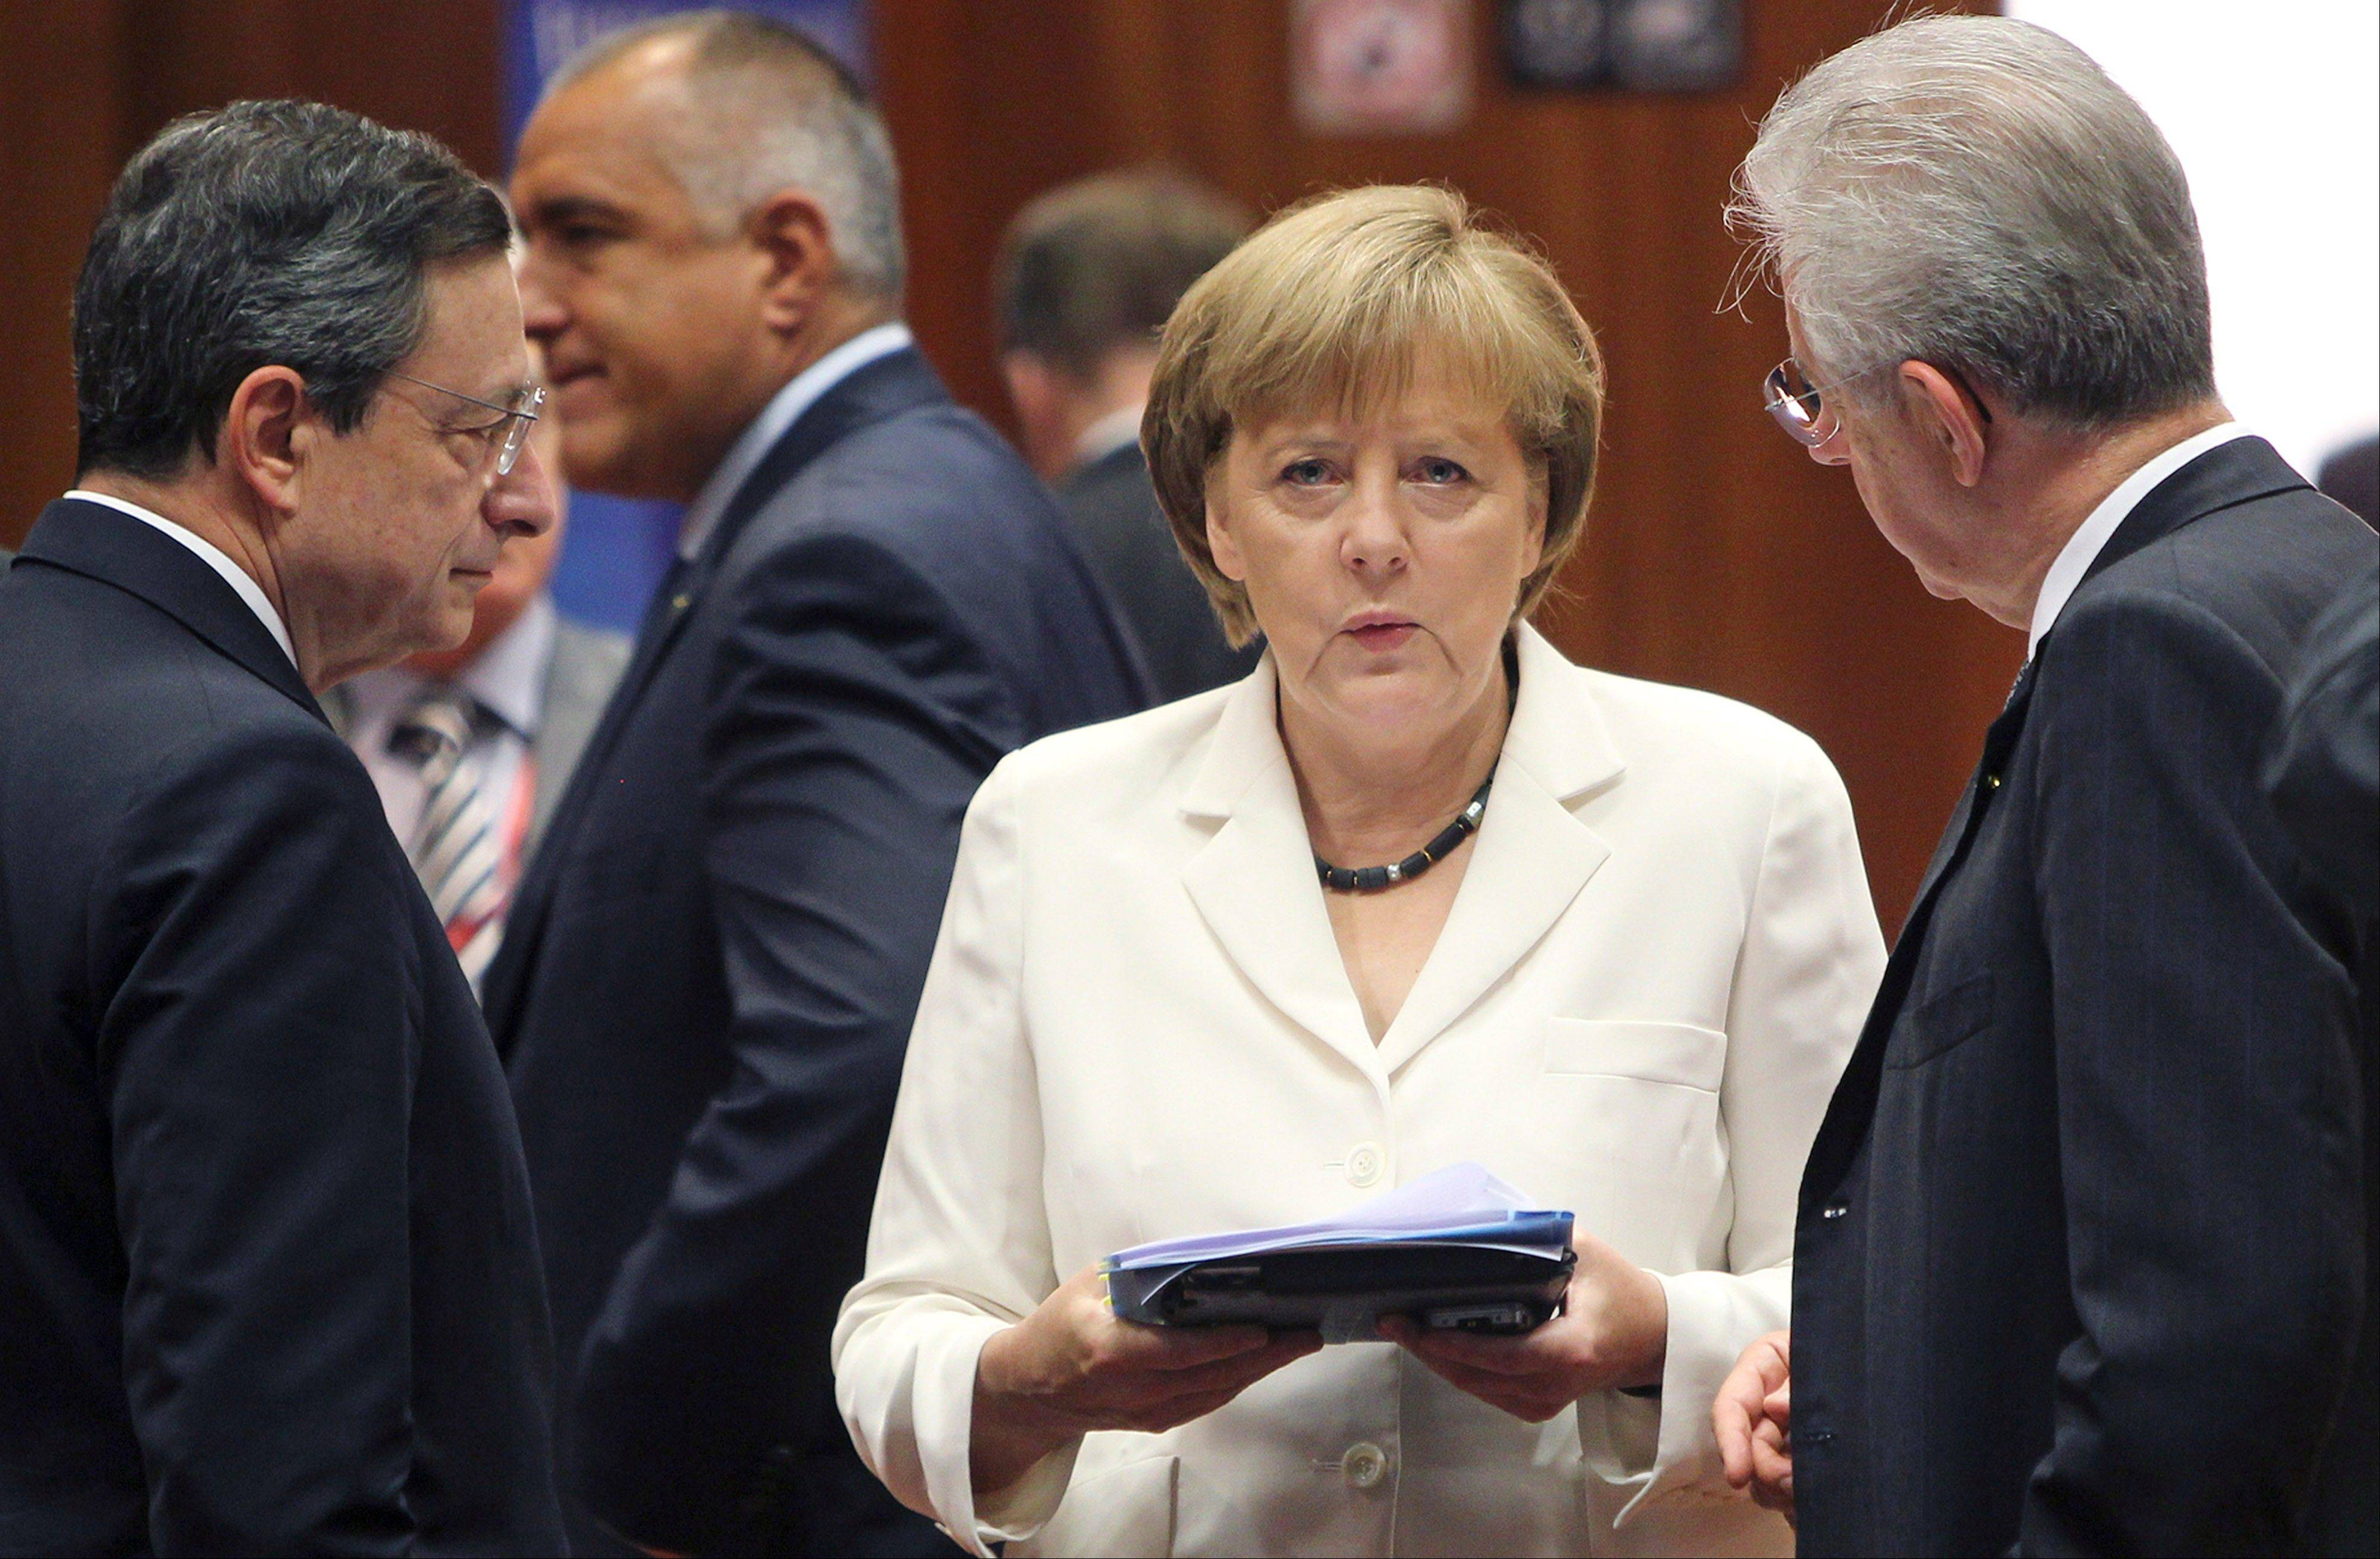 German Chancellor Angela Merkel, center, speaks with European Central Bank President Mario Draghi, left, and Italian Prime Minister Mario Monti during a round table meeting at a EU Summit in Brussels. The worst of Europe�s financial crisis appears to be over.